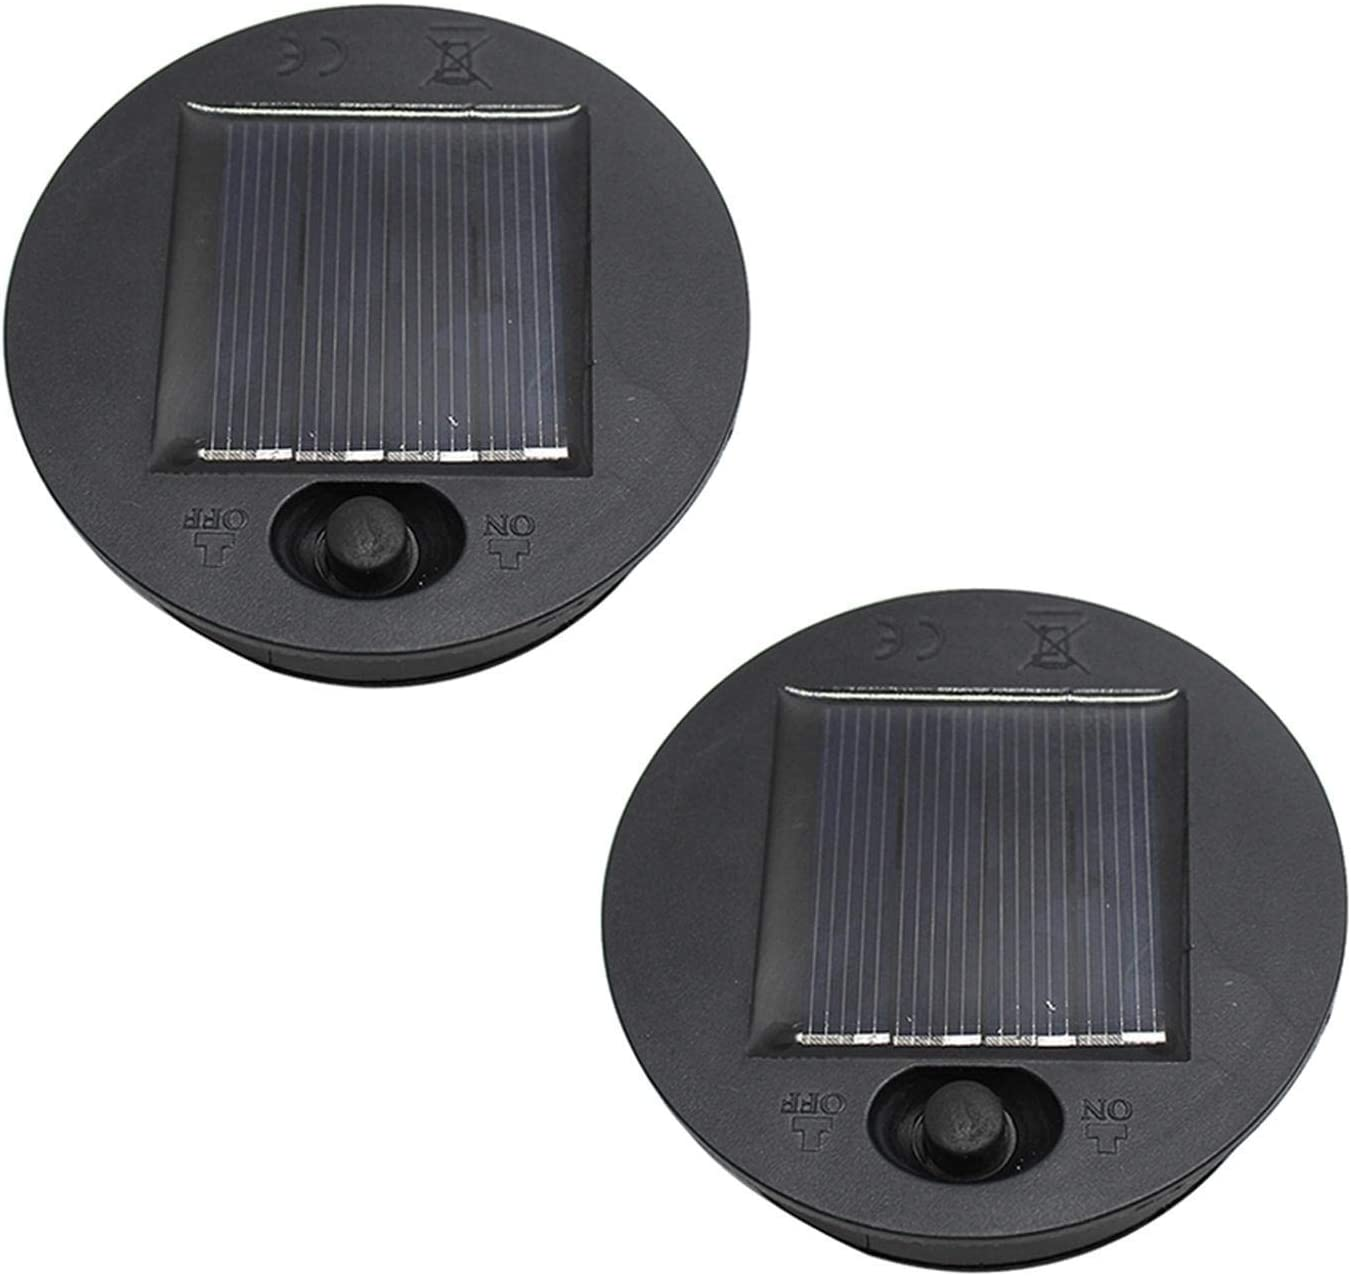 Solar Light Replacement Top Lids for Outdoor Hanging Lanterns, Solar Lamp Led Replacement Top Battery Box for Solar Lantern Garden Patio Walkway Yard (2 PCS,7CM-2.75 INCH)